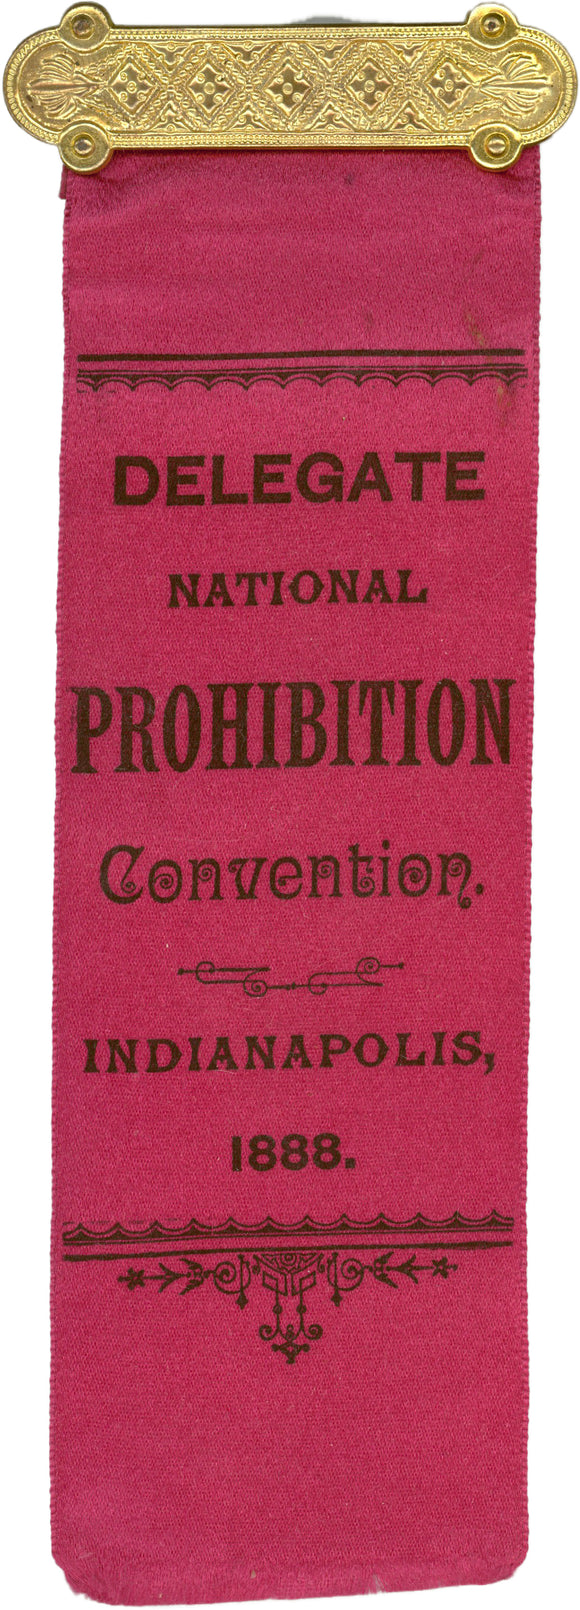 DELEGATE NATIONAL PROHIBITION Convention.  INDIANAPOLIS, 1888.